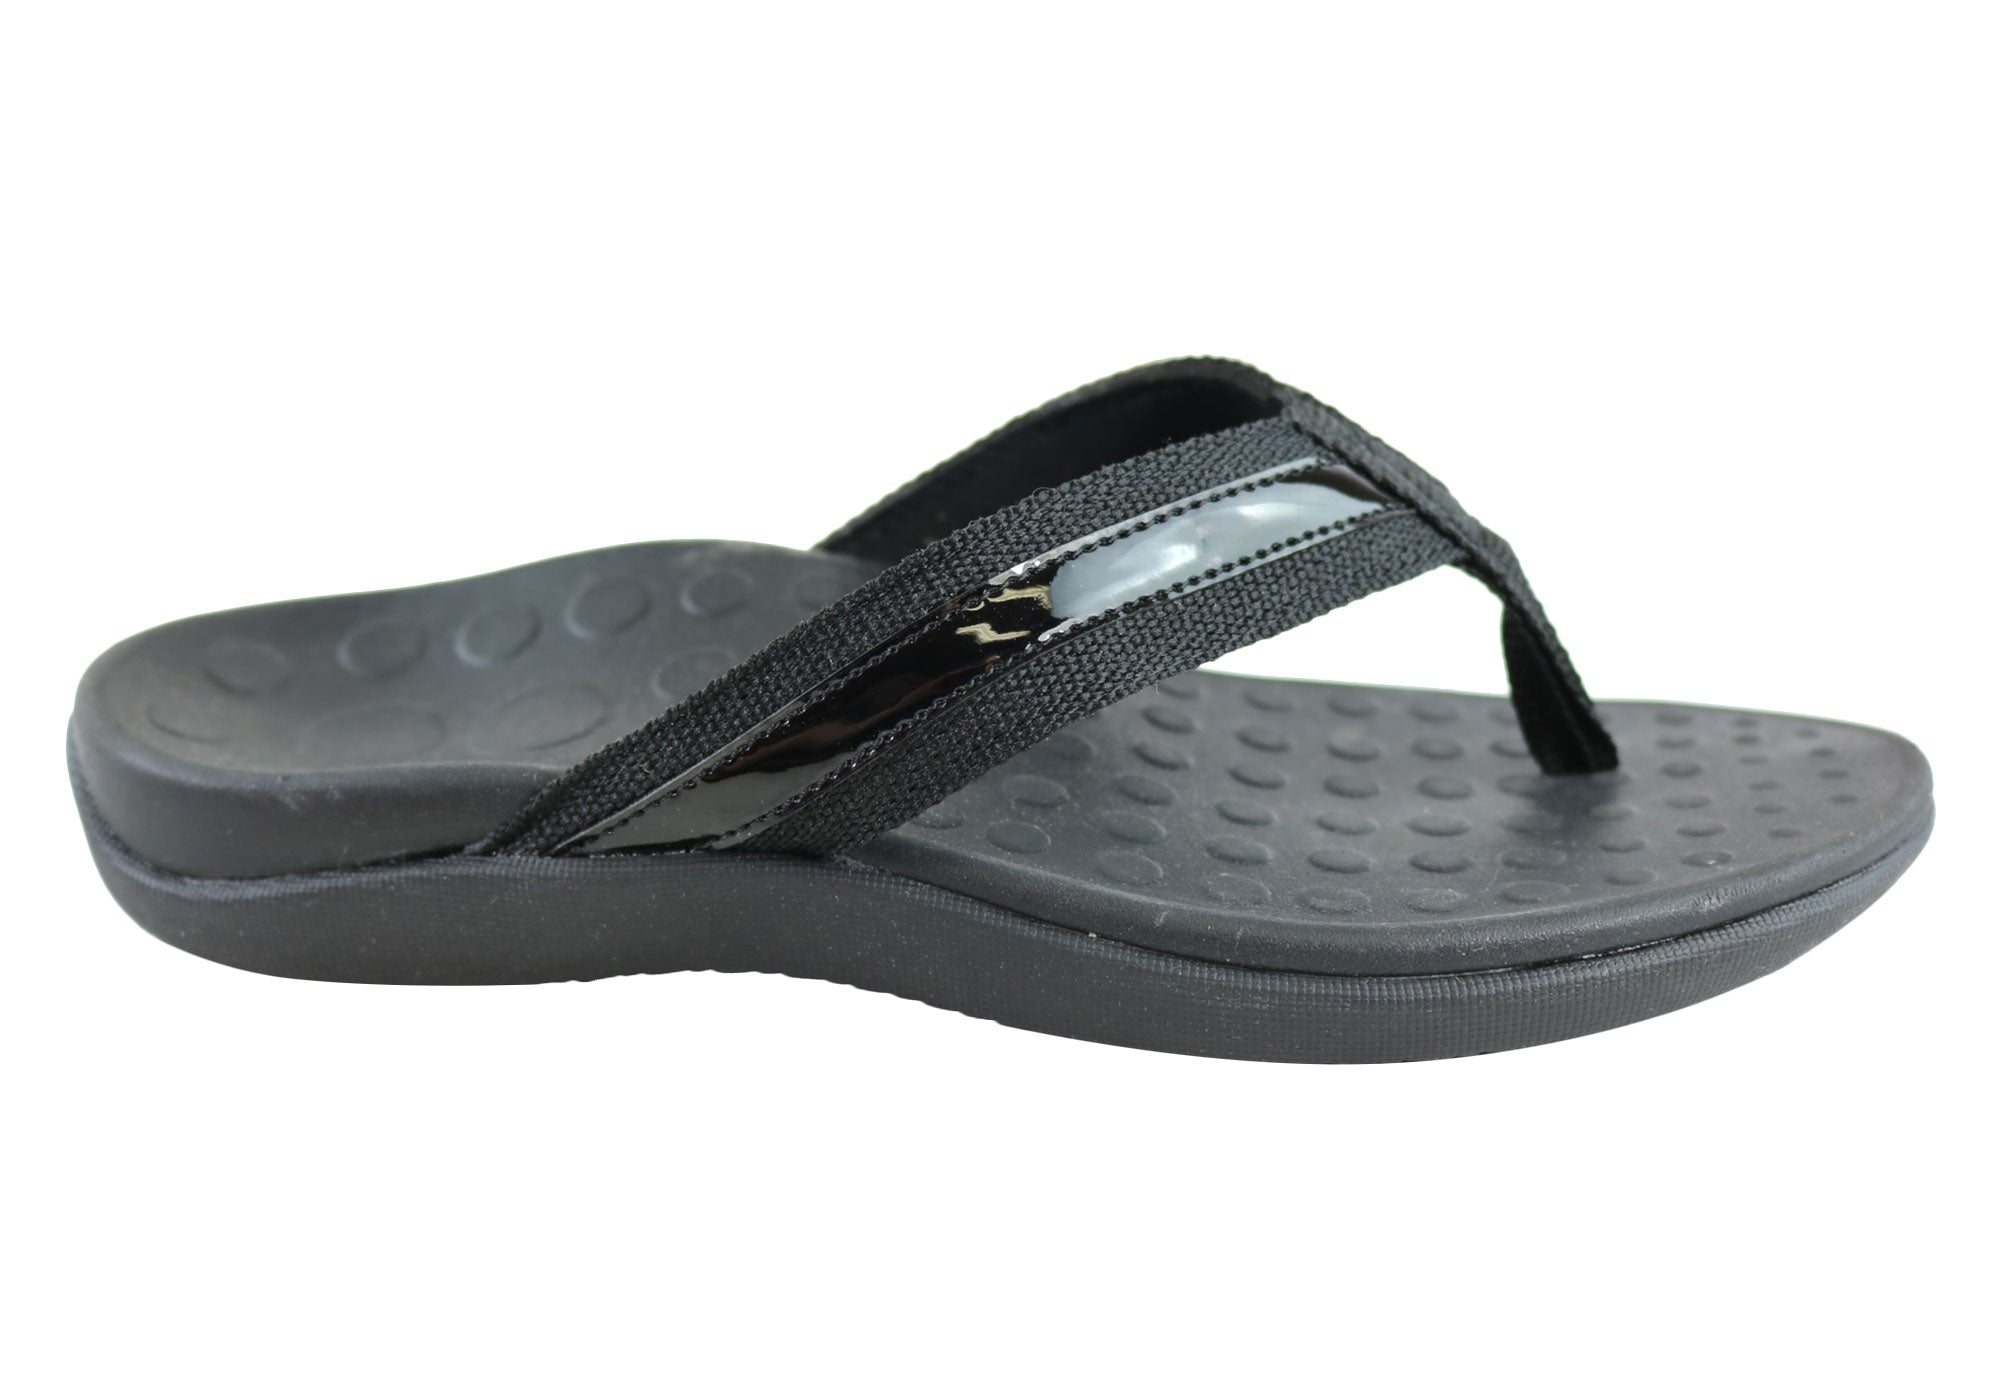 8067c6b1d Home Scholl Orthaheel Tide II Womens Comfort Orthotic Flip Flop Sandals.  Black ...